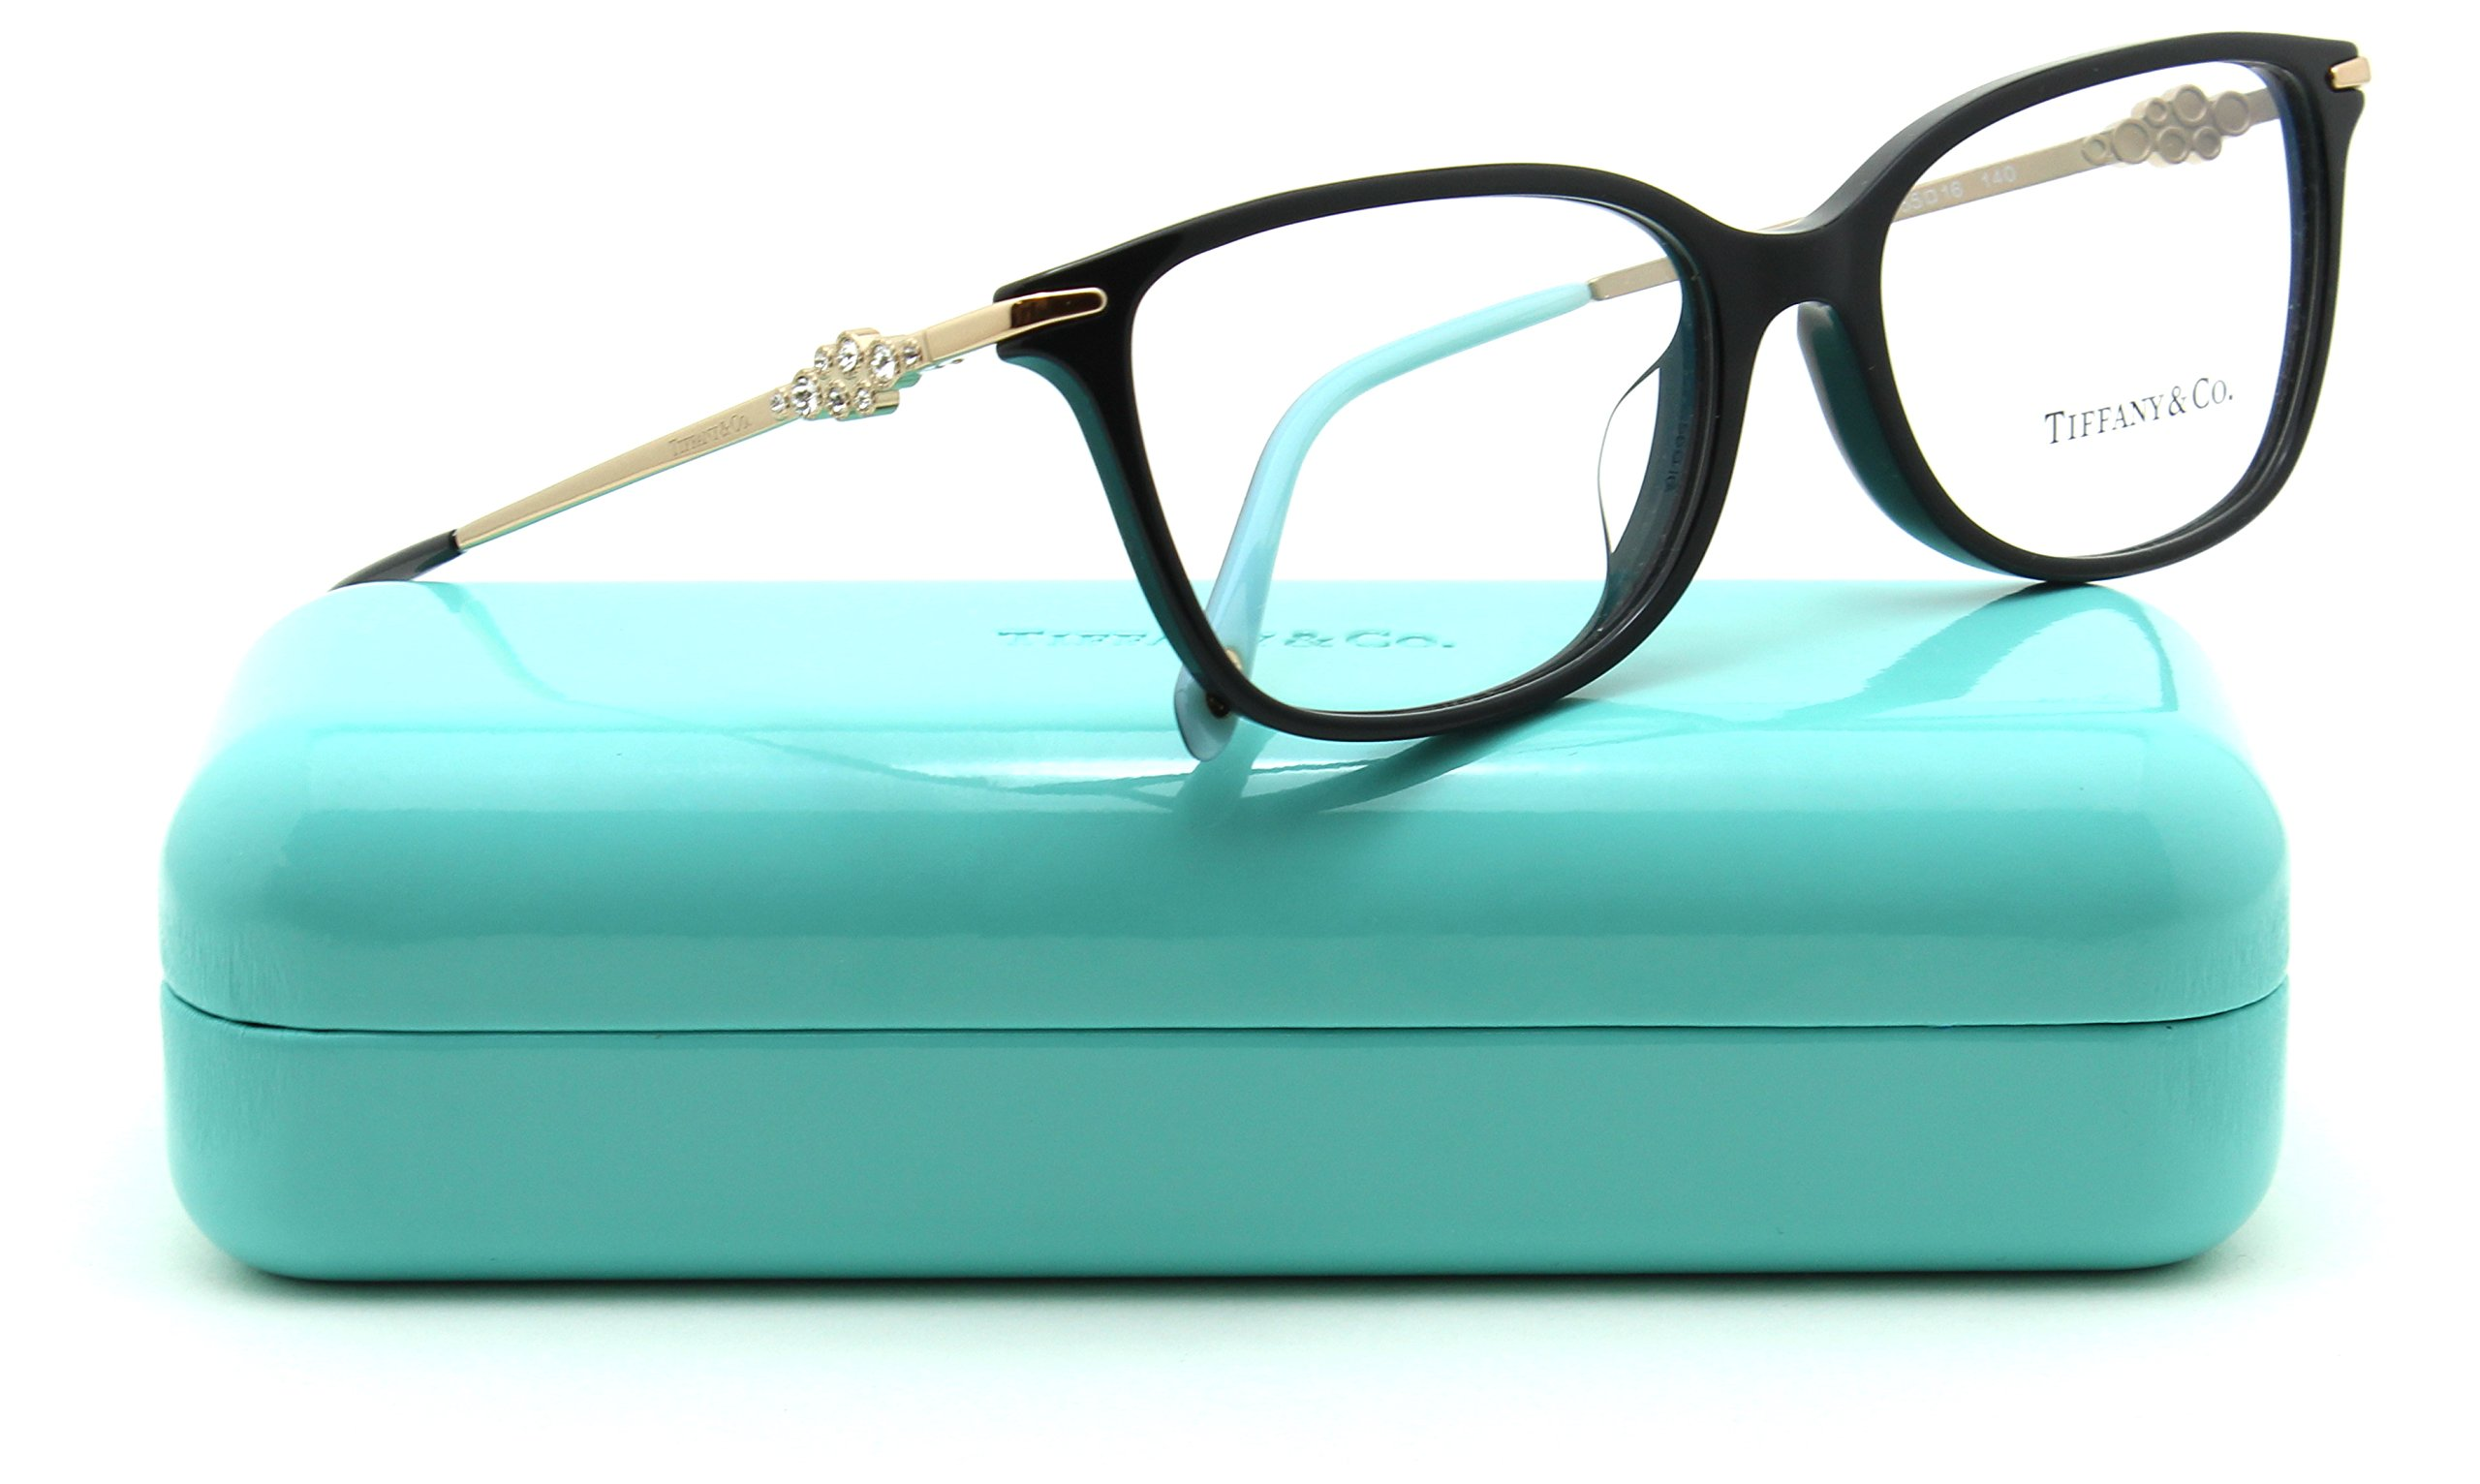 Tiffany & Co. TF 2133-B-F Women Eyeglasses RX - able Frame Asian Fit (Black 8001, 55) by Tiffany & Co.